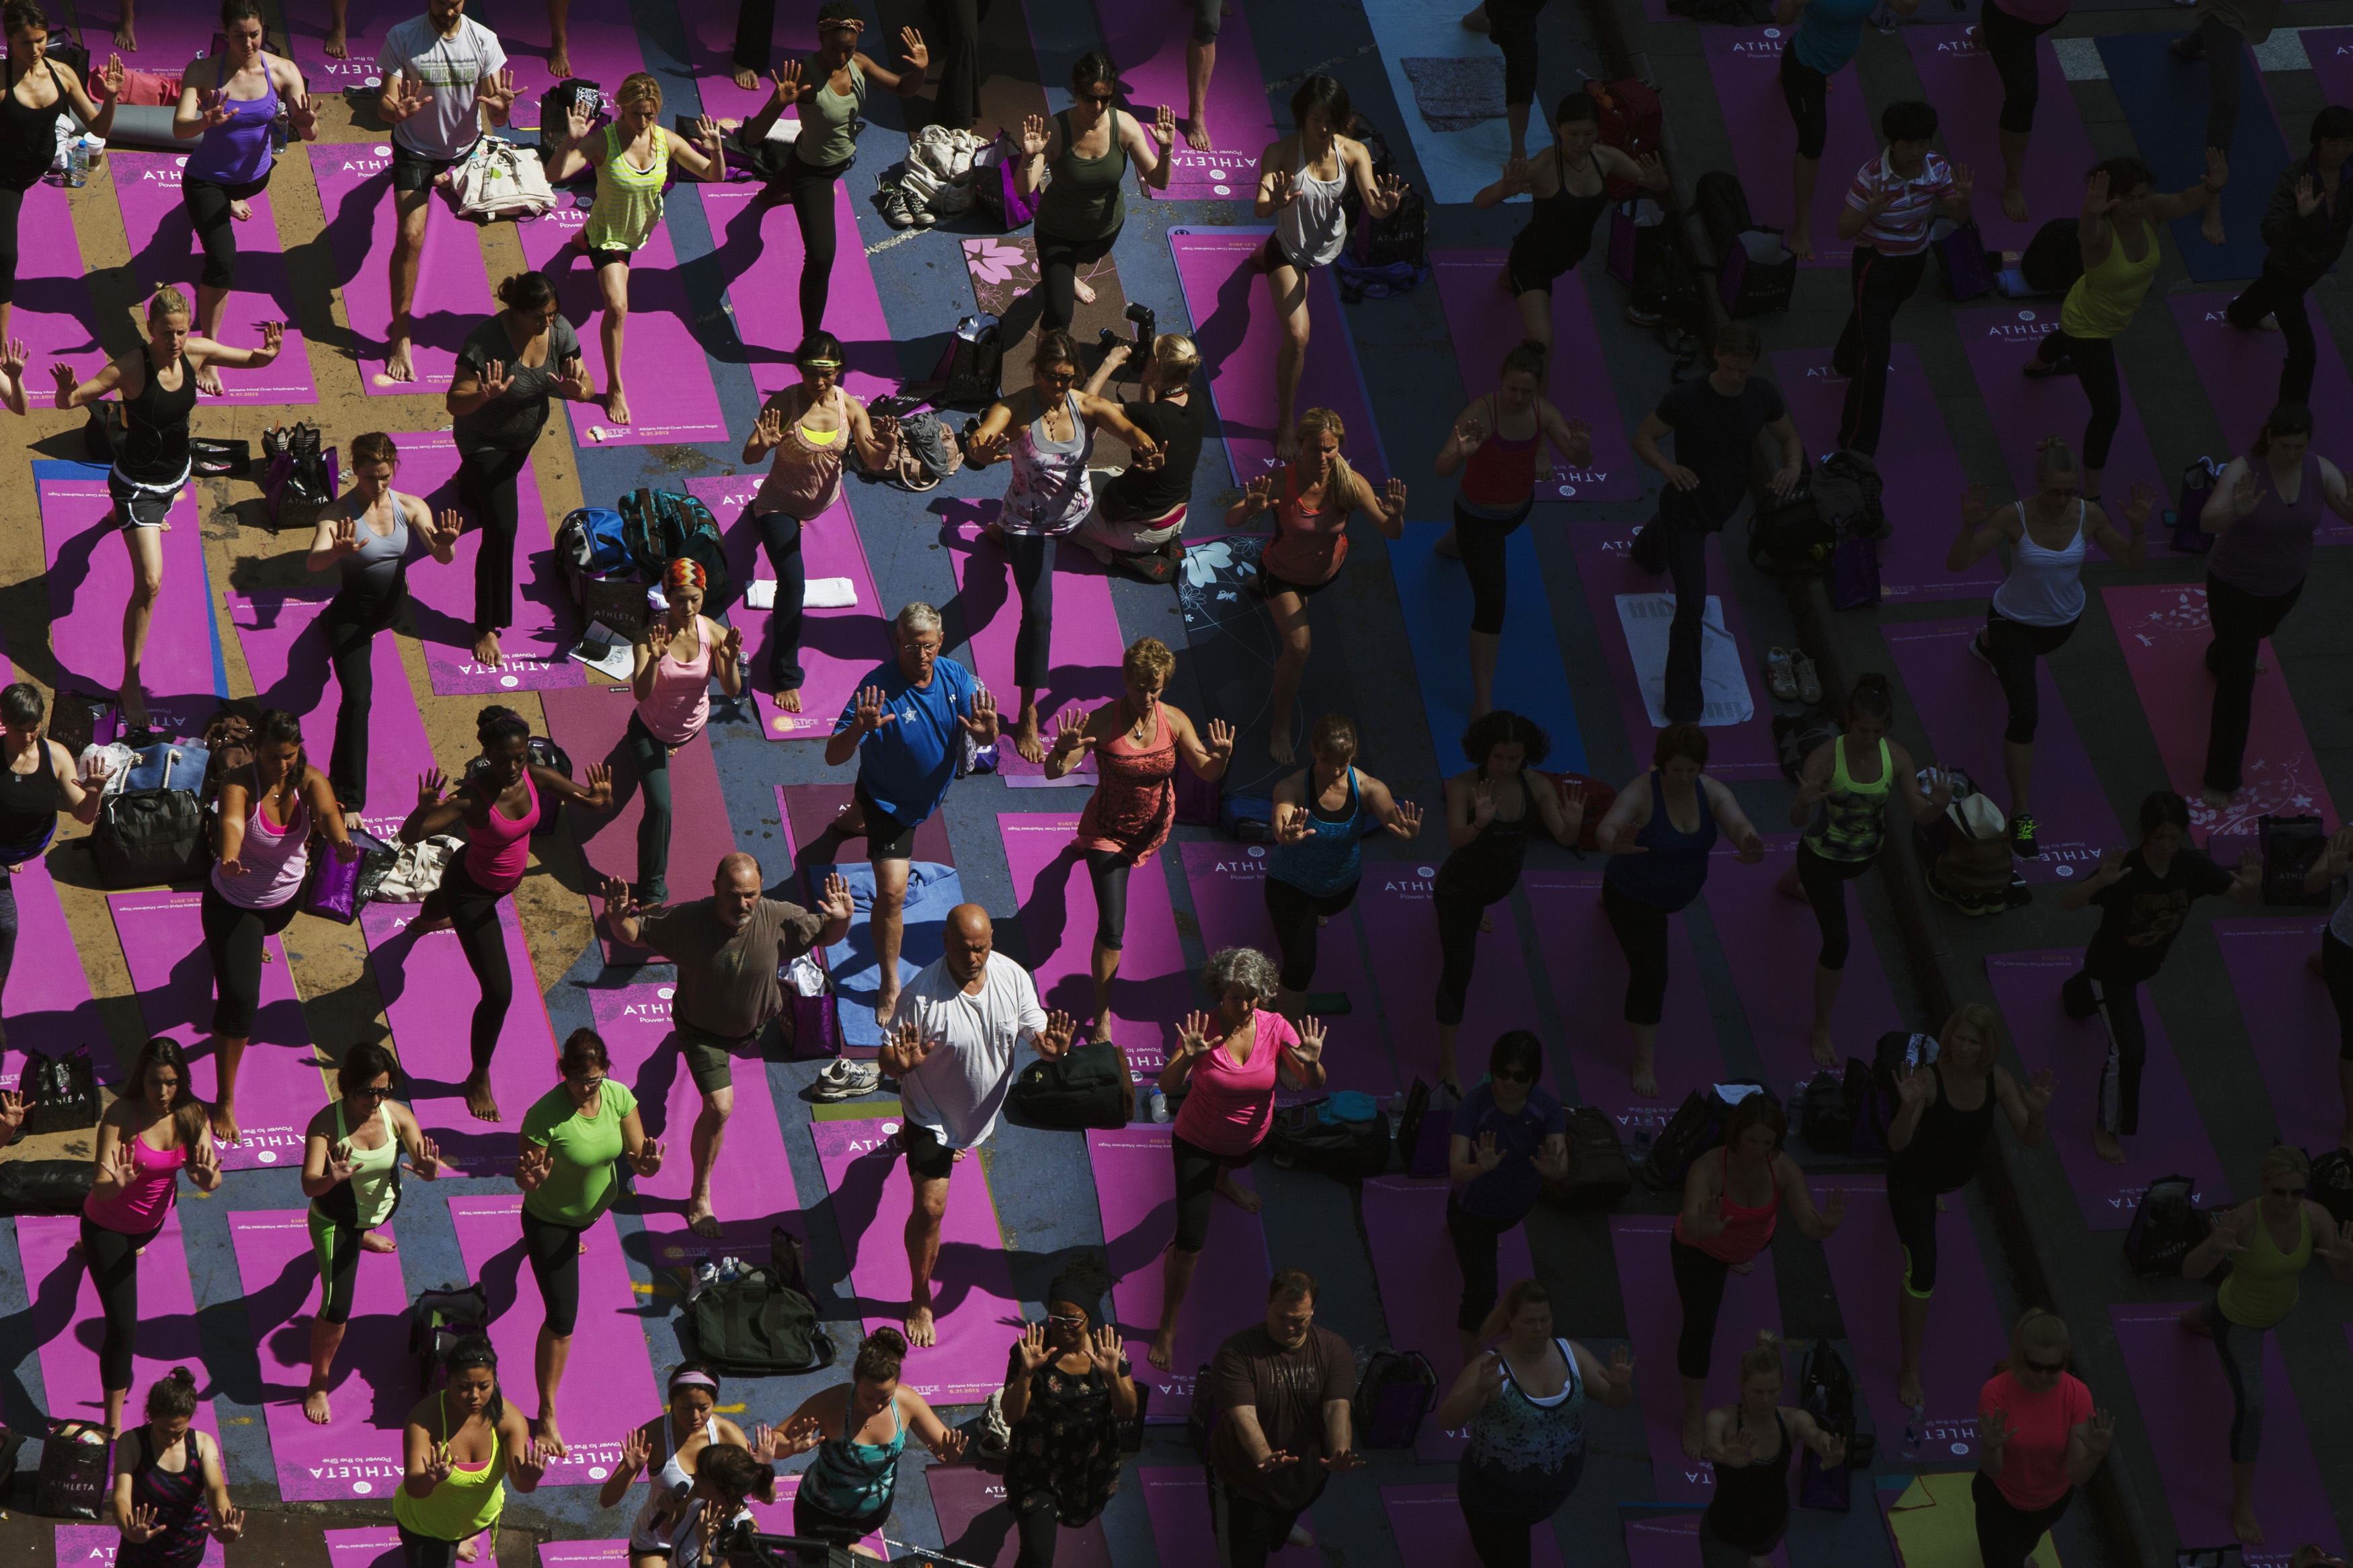 People take part in a group yoga practice on the morning of the summer solstice in New York's Times Square on June 21, 2013. The  Solstice in Times Square  event on Friday brought out thousands of participants to celebrate the year's longest day in New York.